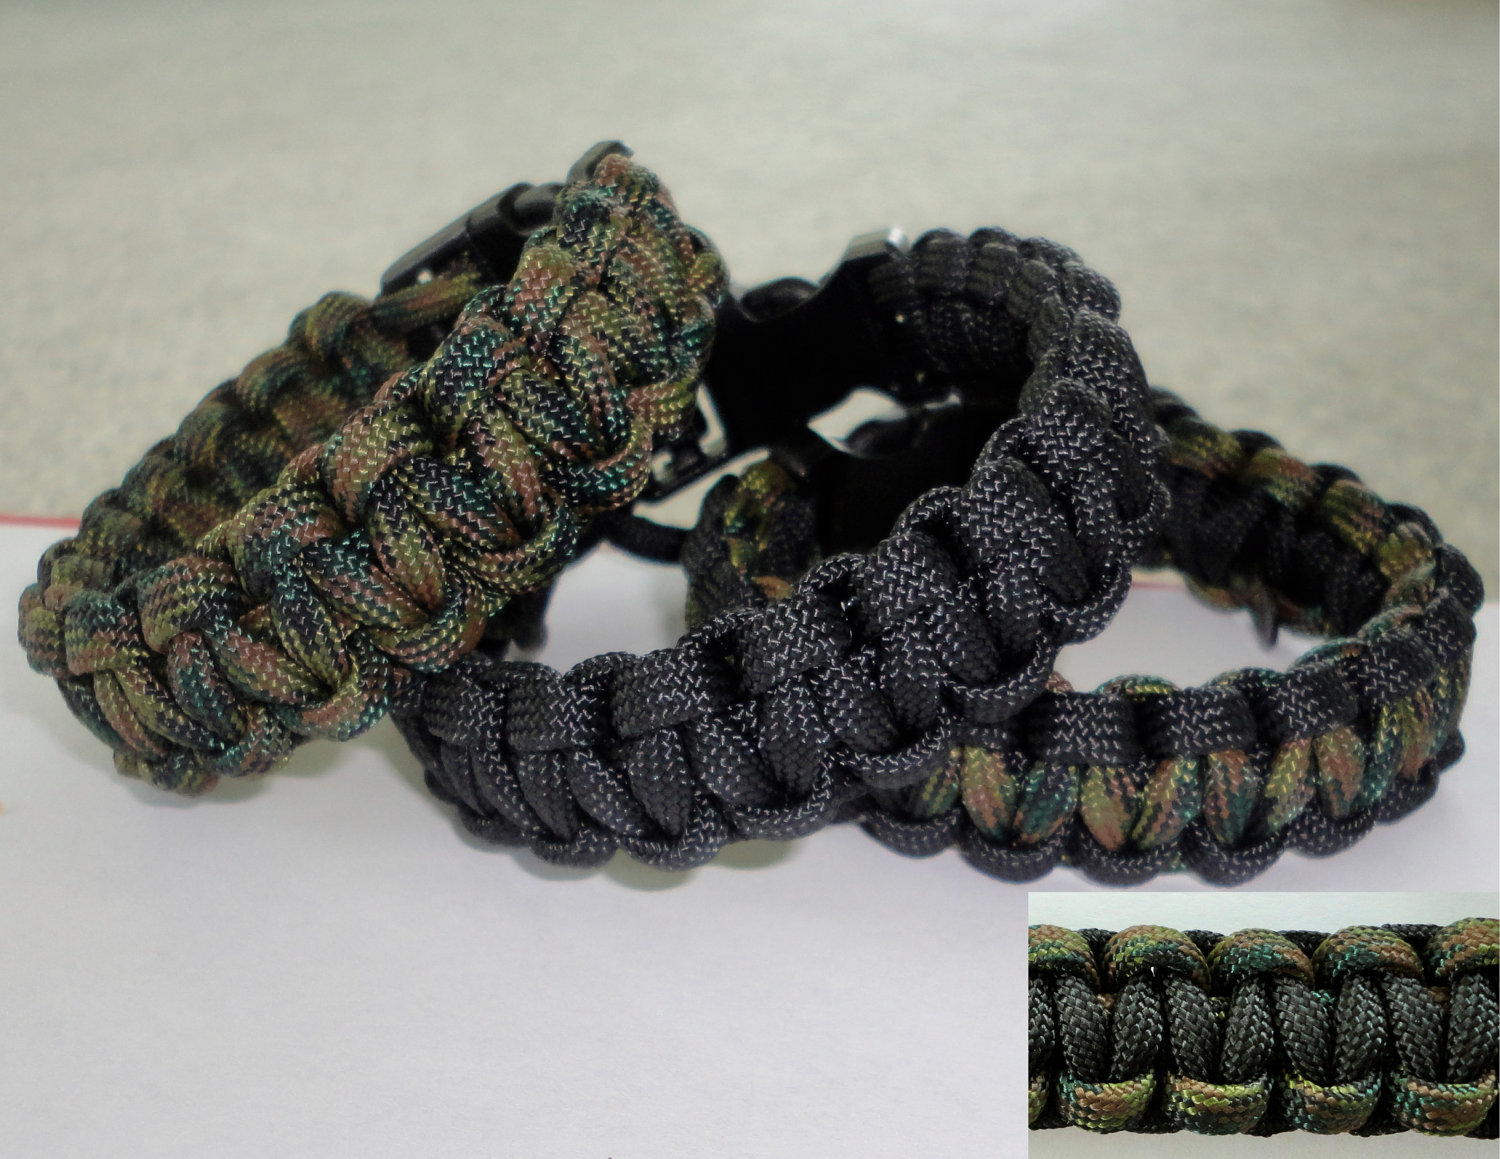 Cool paracord projects 550 survival bracelets and more for Paracord wallpaper